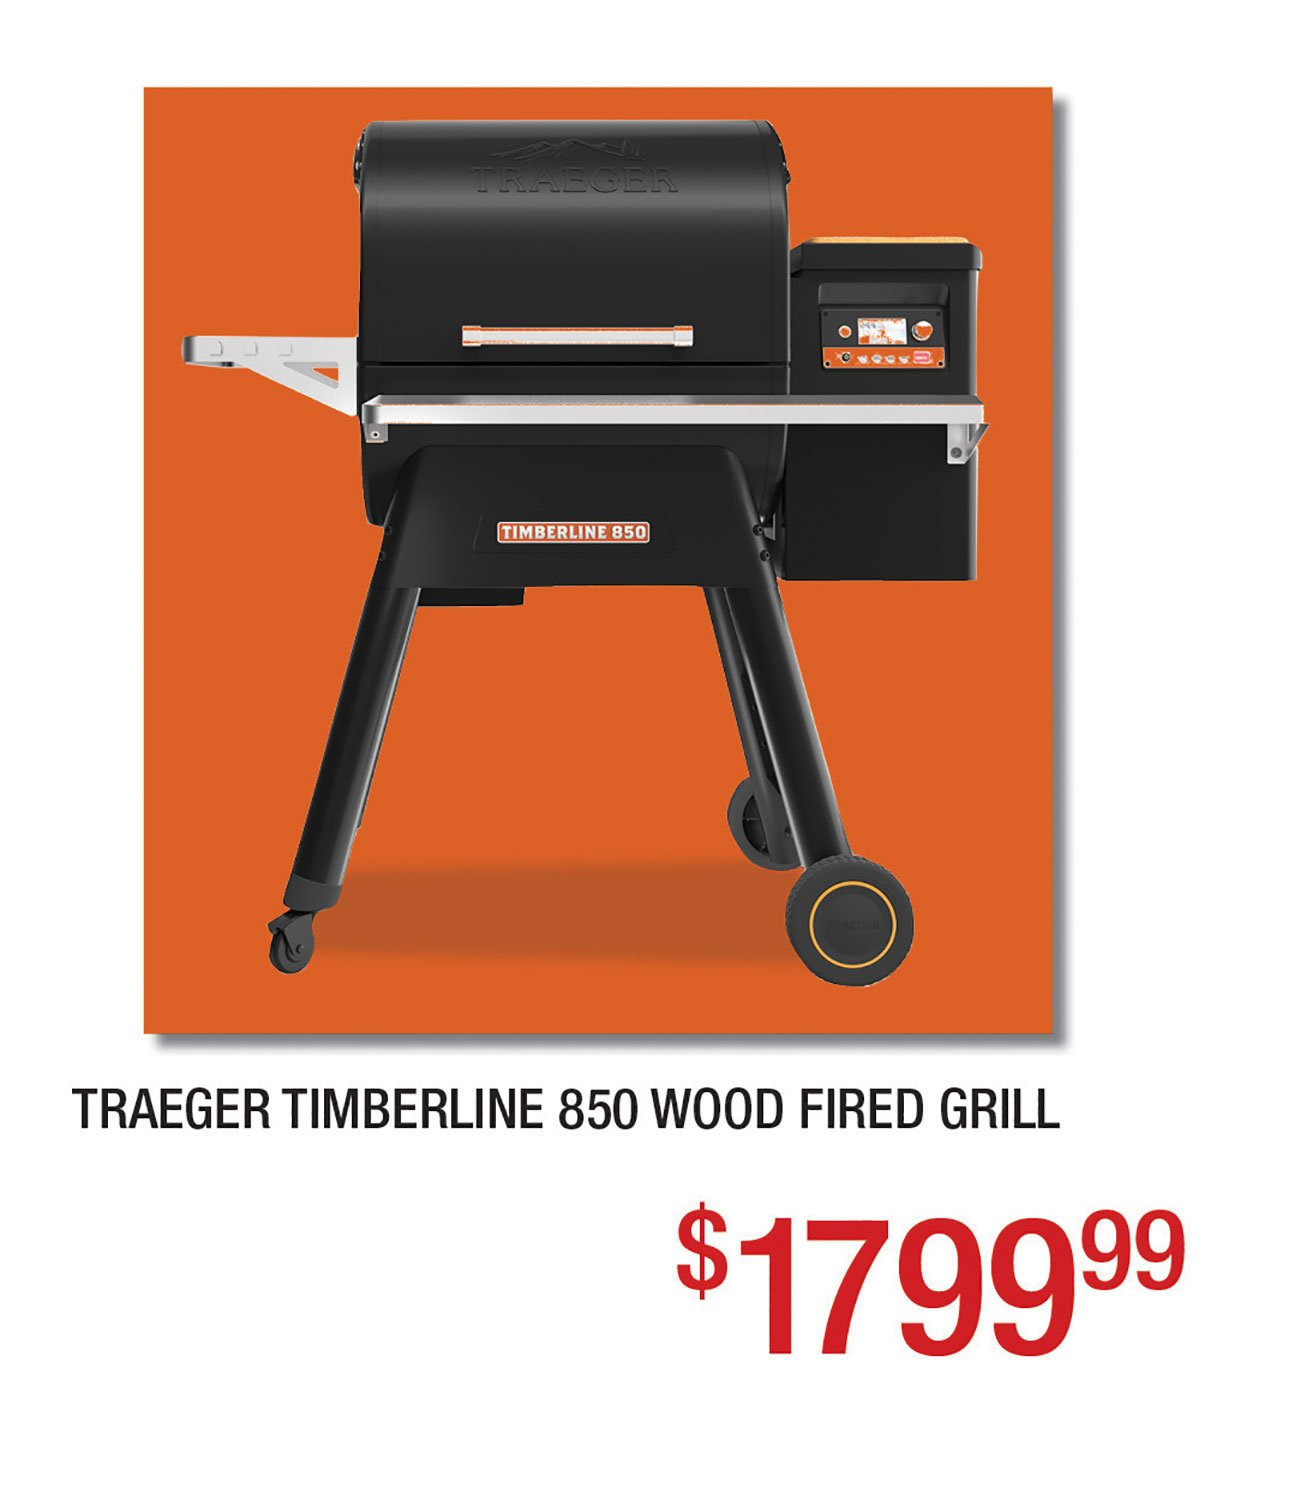 Timberline-850-Grill